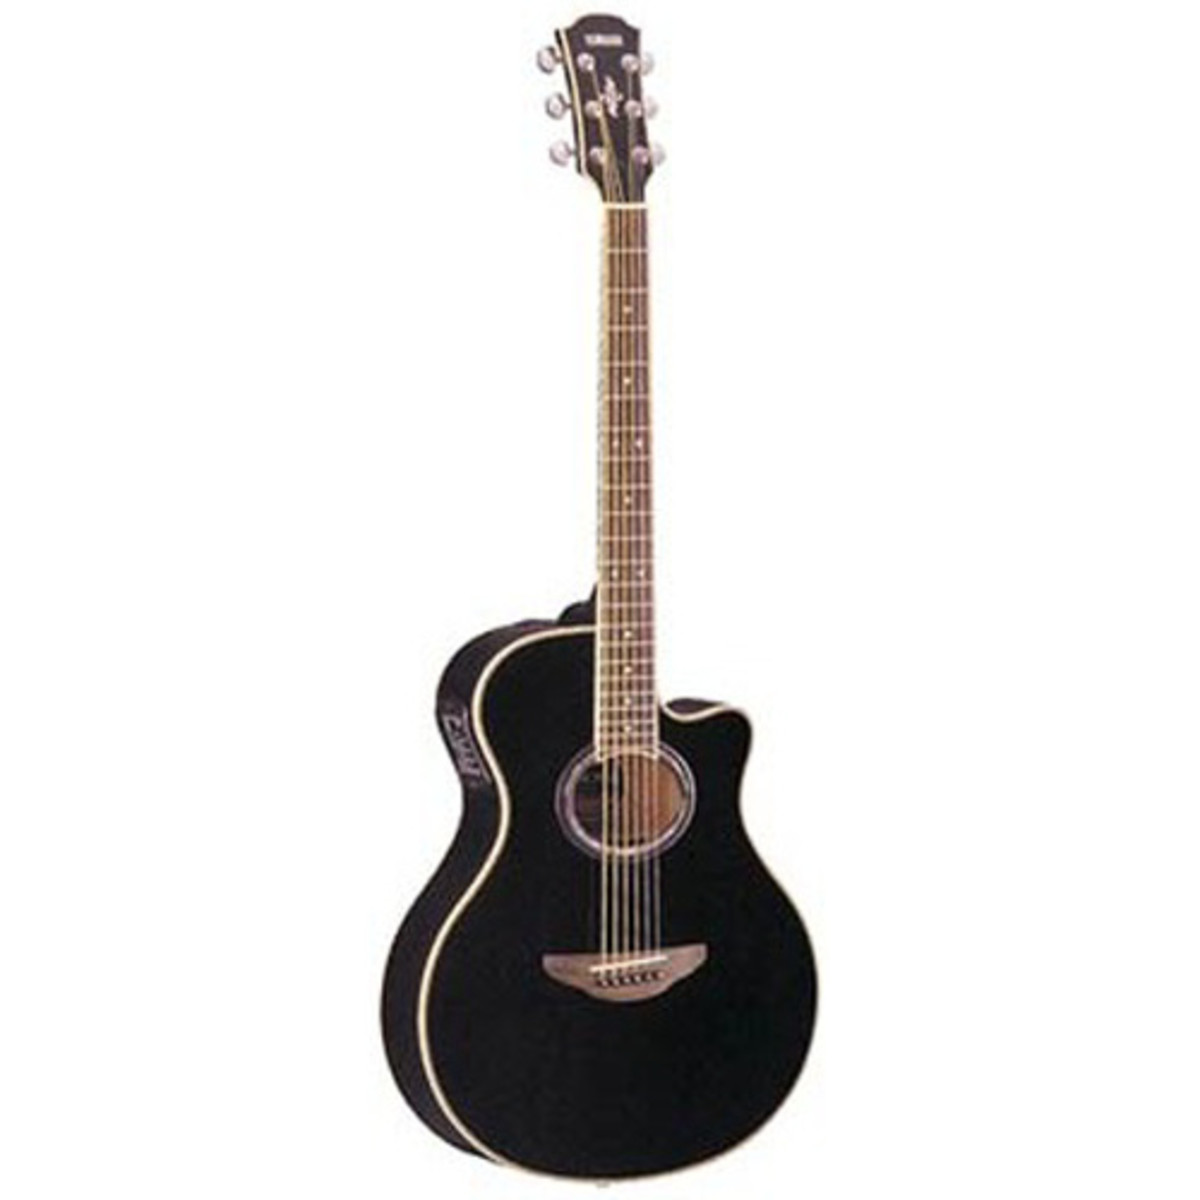 yamaha apx700 guitare electro acoustique noir. Black Bedroom Furniture Sets. Home Design Ideas